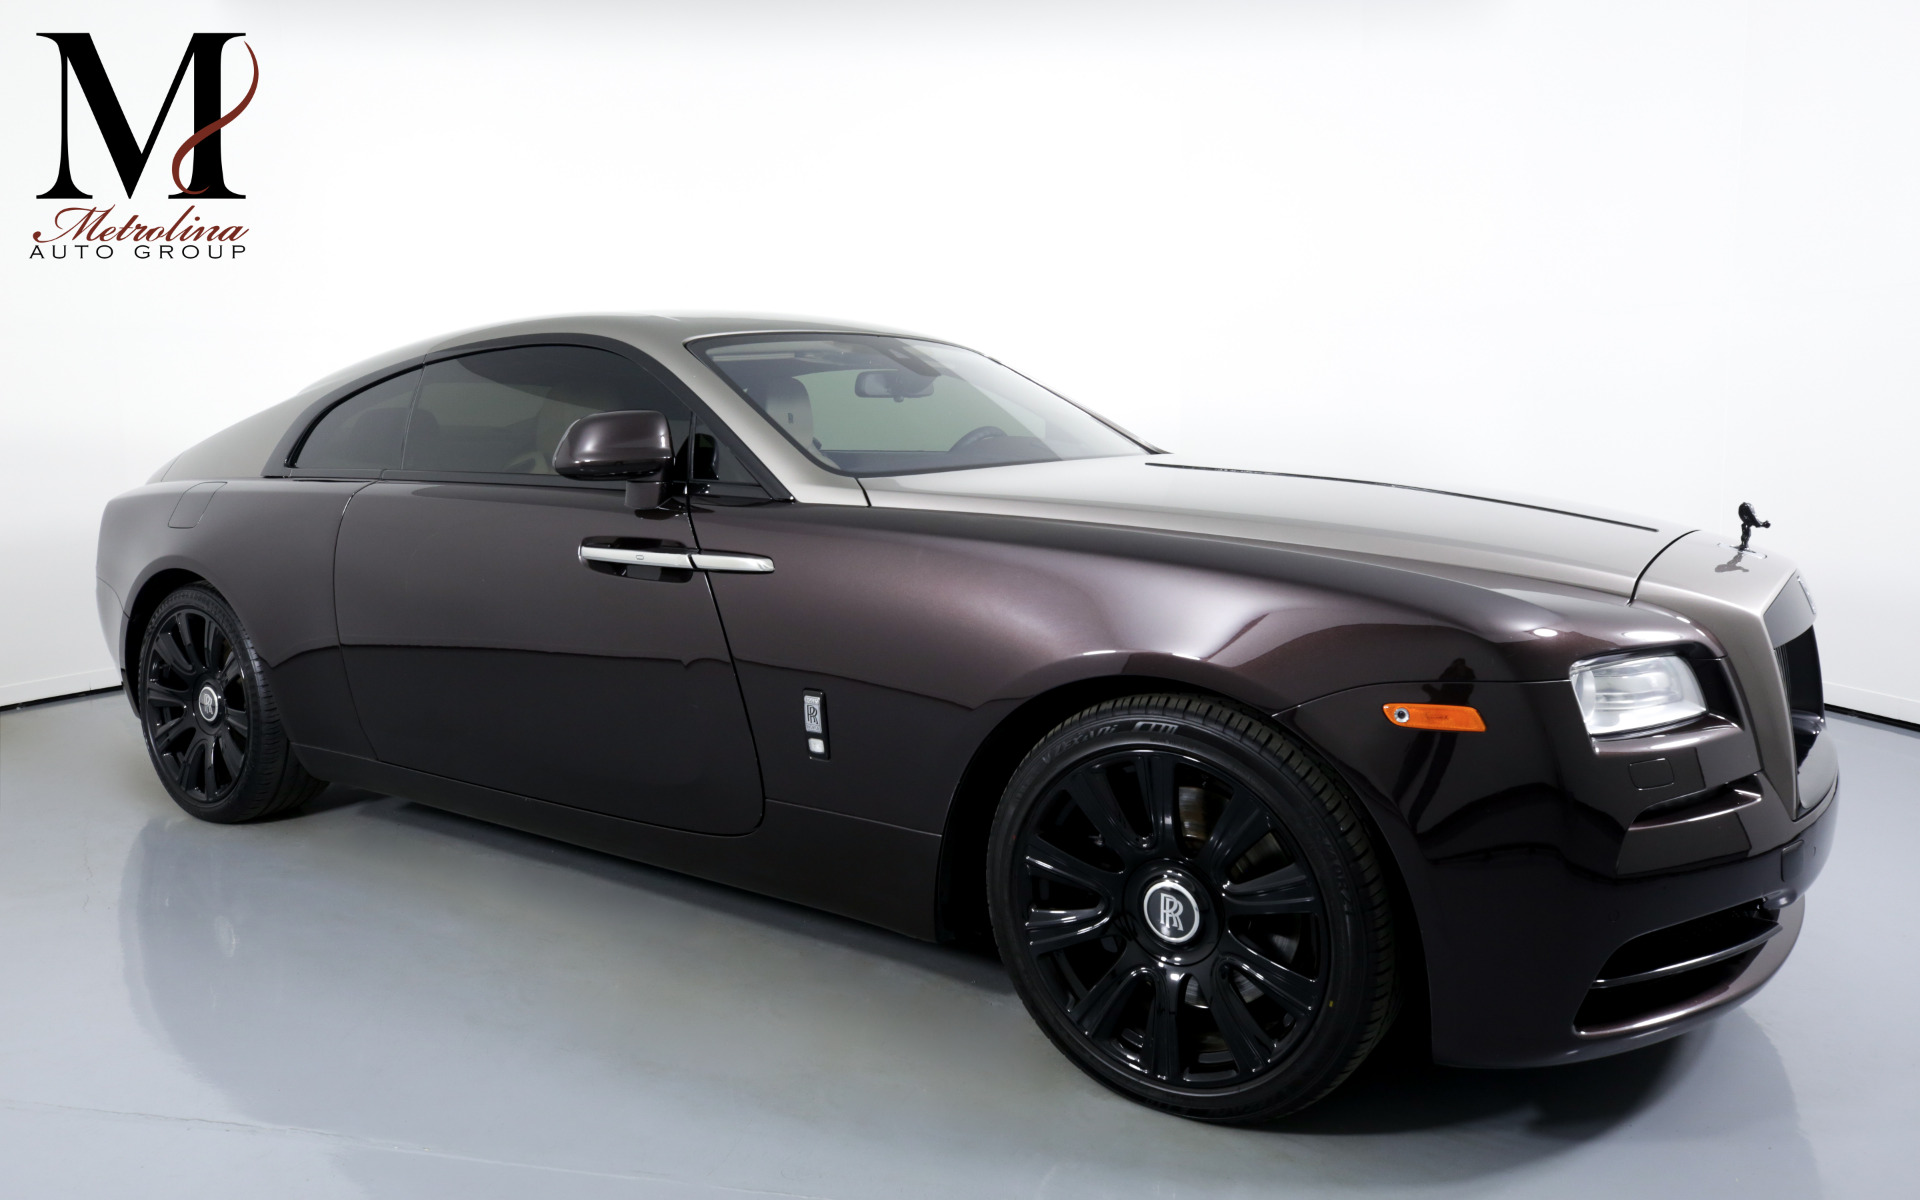 Used 2014 Rolls-Royce Wraith for sale Sold at Metrolina Auto Group in Charlotte NC 28217 - 1